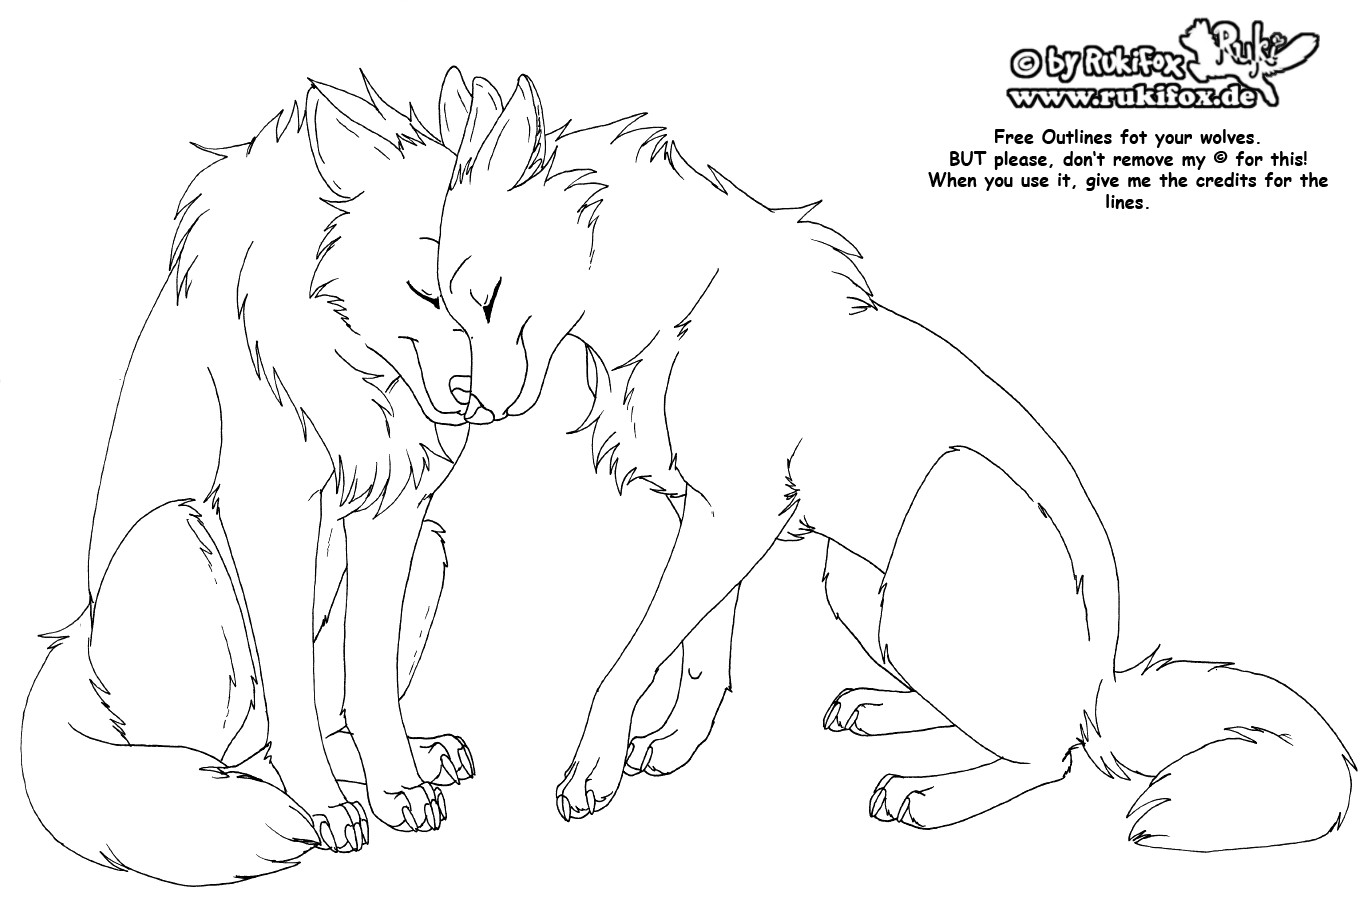 File:wolves Free Outline By Rukifoxg How To Draw A Cartoon Snow Leopard  From Animal